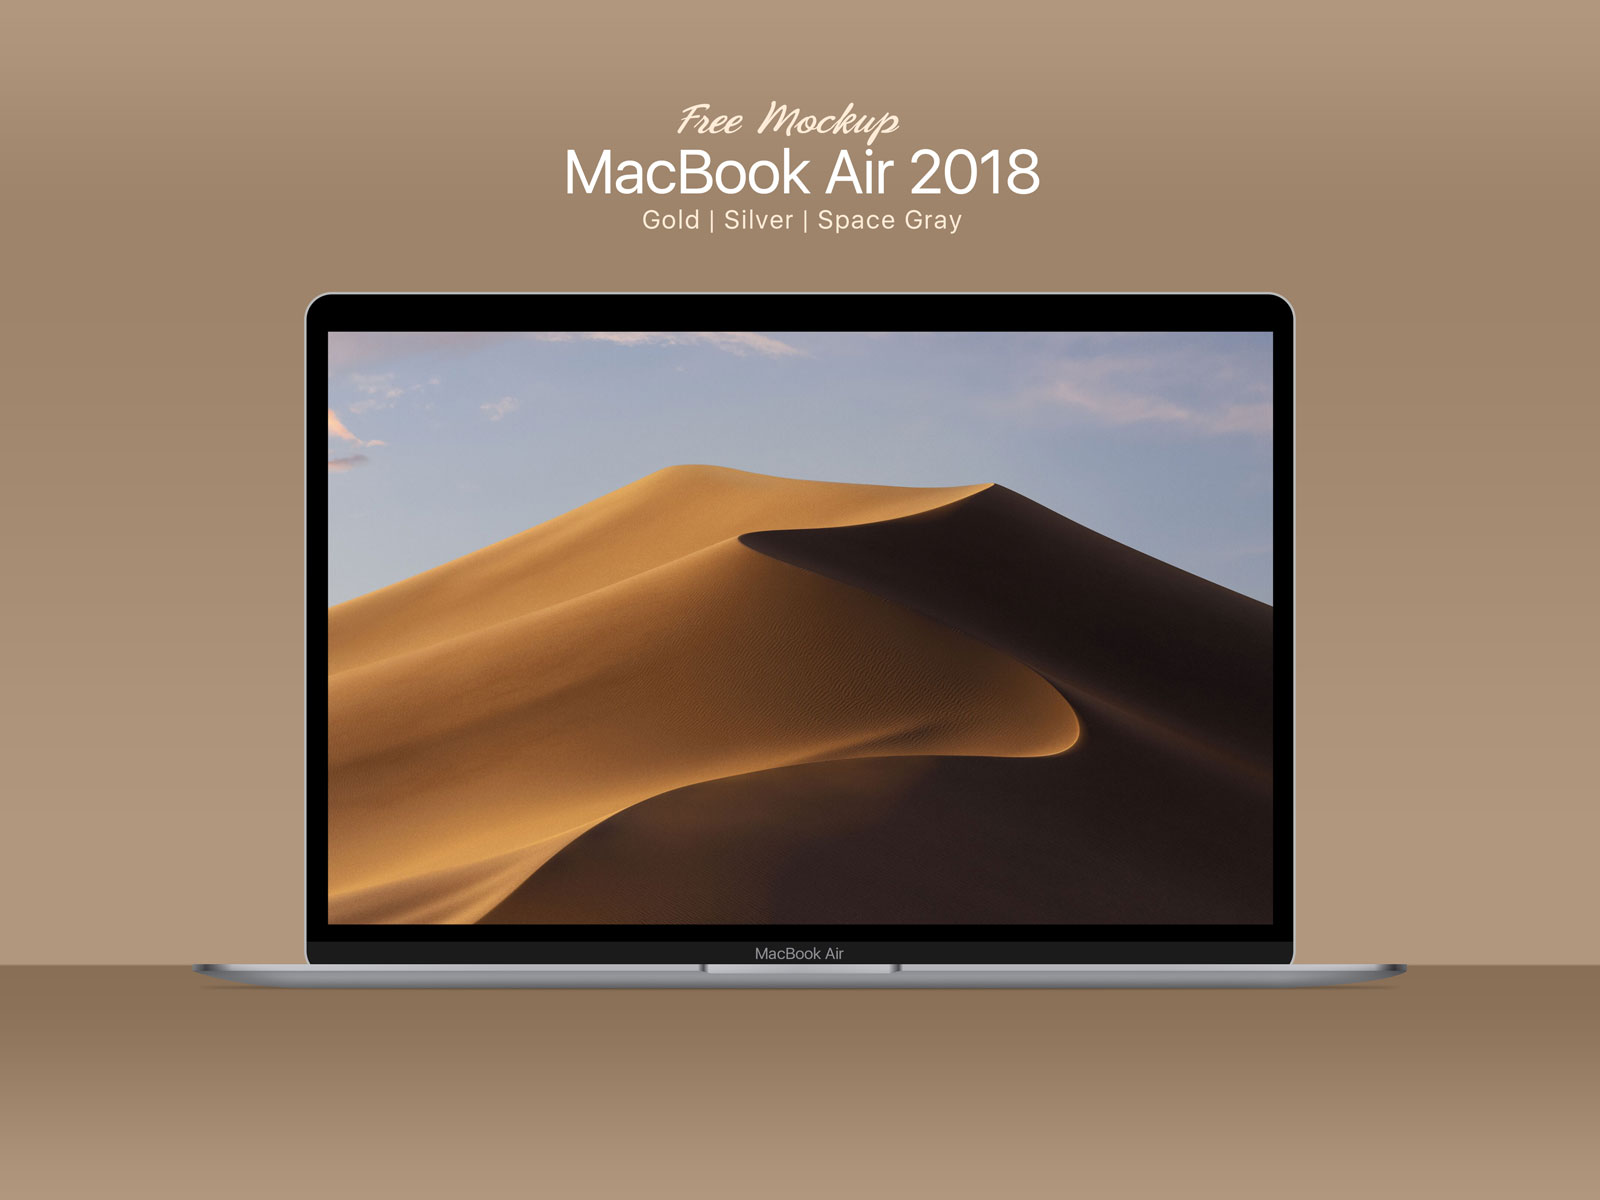 Apple Macbook air desktop mockup psd